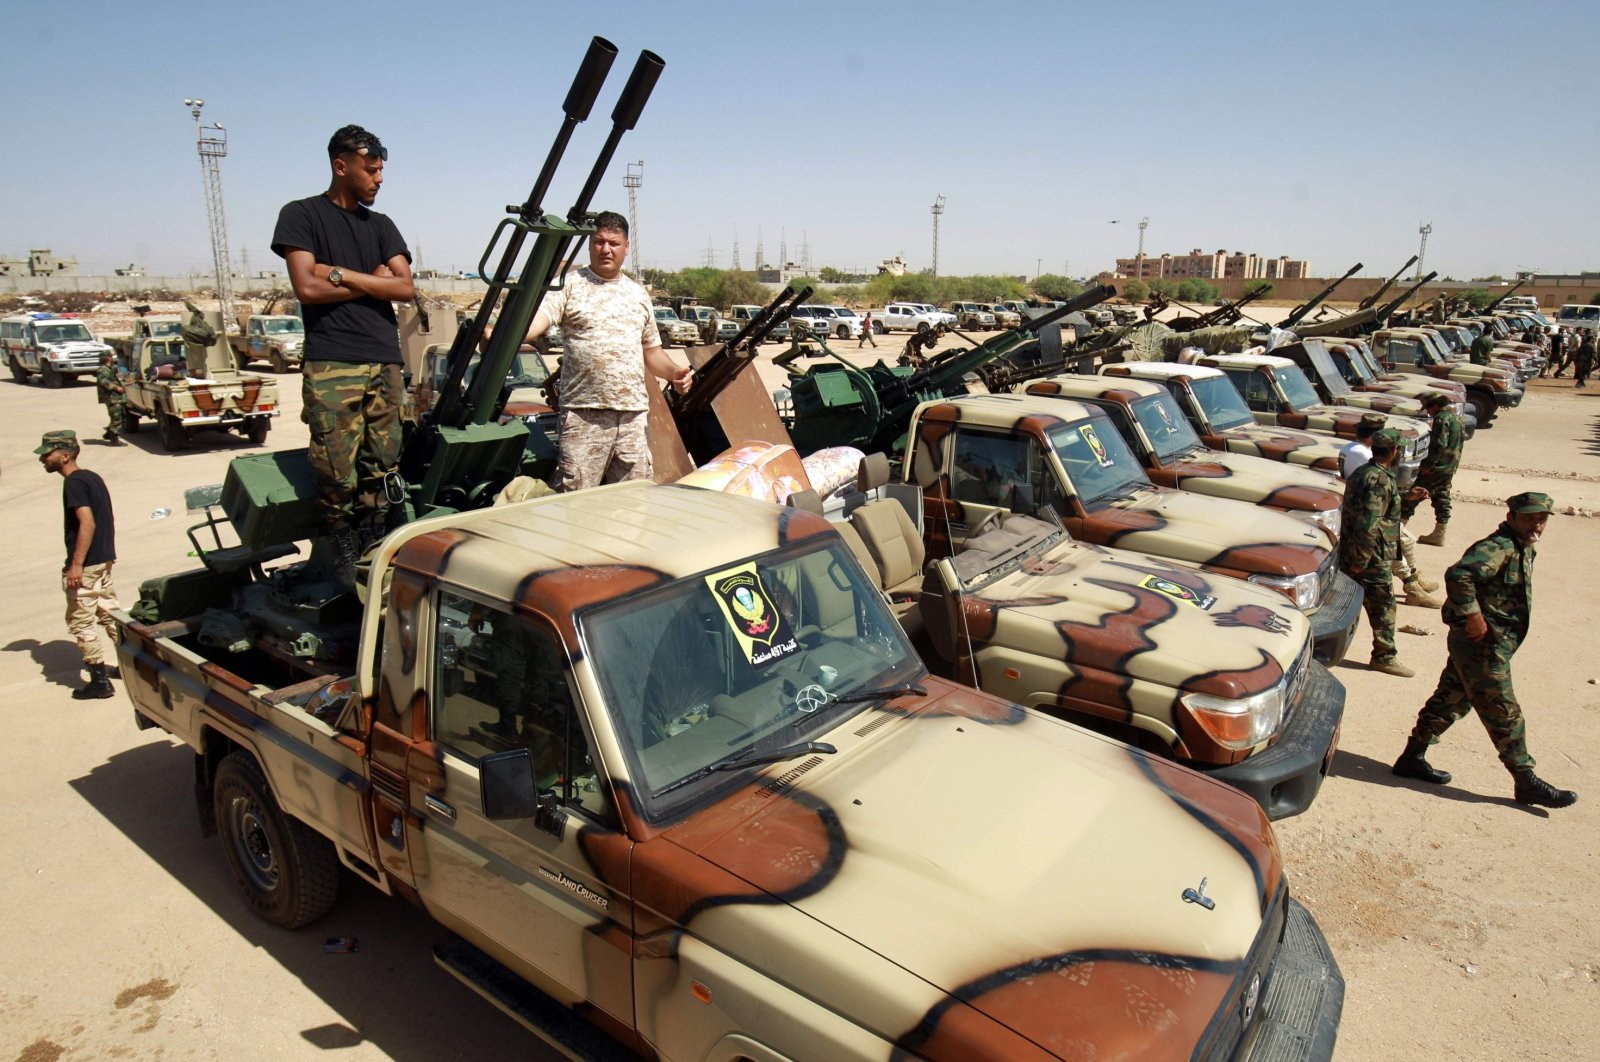 Forces loyal to putschist Gen. Khalifa Haftar gather in the city of Benghazi, on their way to back up fellow fighters on the front line west of the city of Sirte, Libya, June 18, 2020. (AFP Photo)